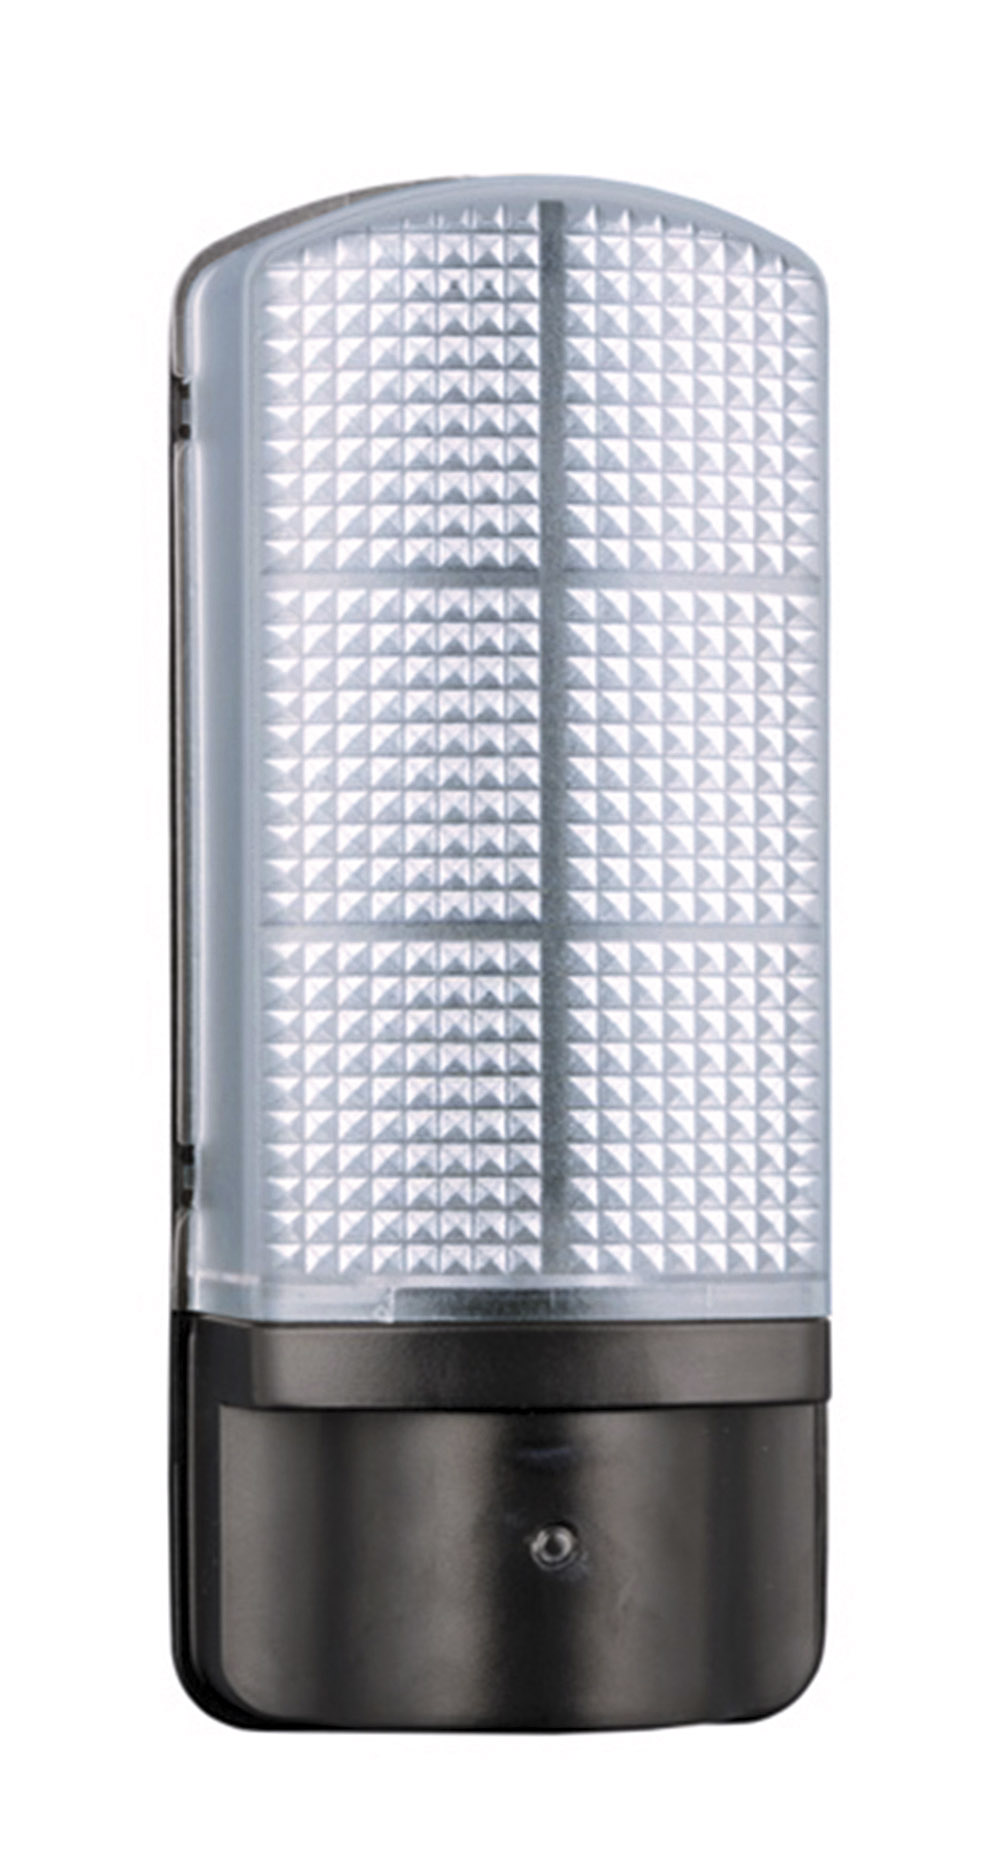 Epping Led Exterior Wall Light With Day Night Photocell Eld Leading Lighting